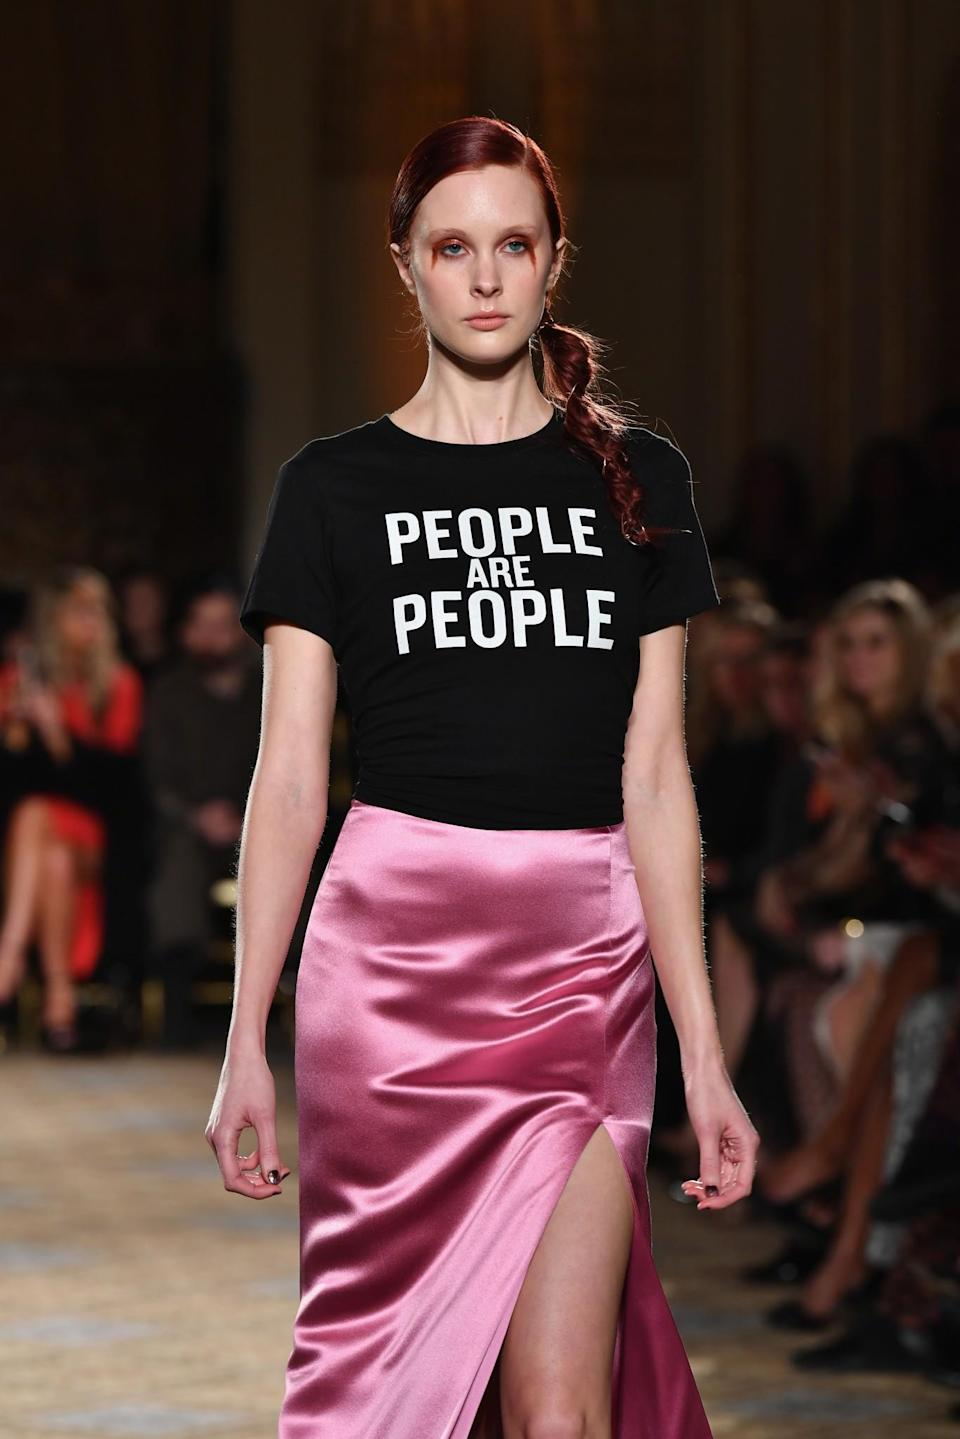 """<p>The designer is donating all of the profits from his """"People are People"""" T-shirts to the ACLU. People are People by Christian Siriano x Leggo your Ego, $25-$26 at <a rel=""""nofollow noopener"""" href=""""http://leggoyourego.merchdirect.com/products/59731-people-are-people-mens-sizing"""" target=""""_blank"""" data-ylk=""""slk:Leggo your Ego"""" class=""""link rapid-noclick-resp"""">Leggo your Ego</a>. </p>"""